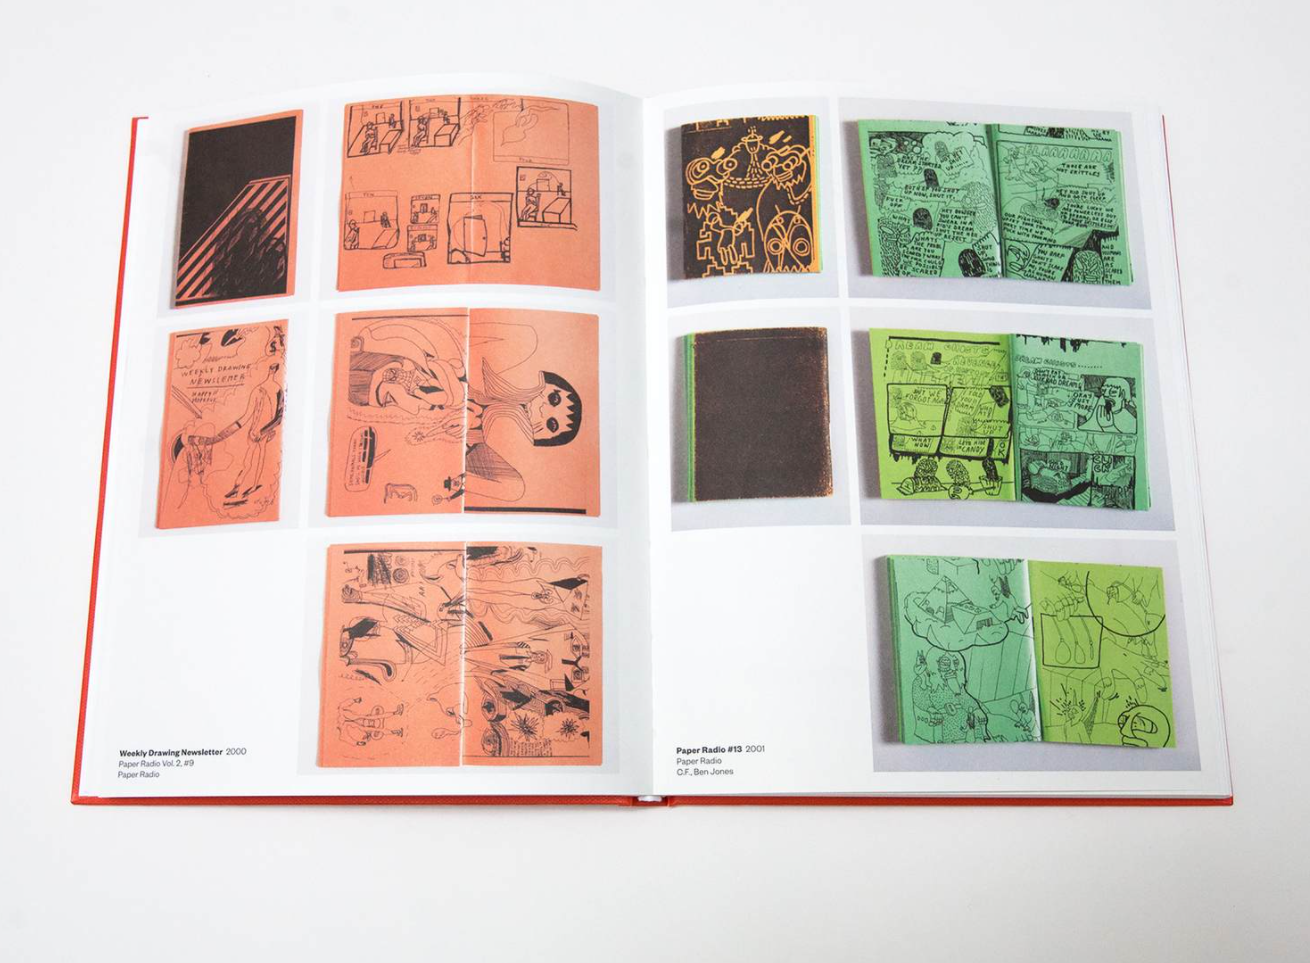 inside spread of the book